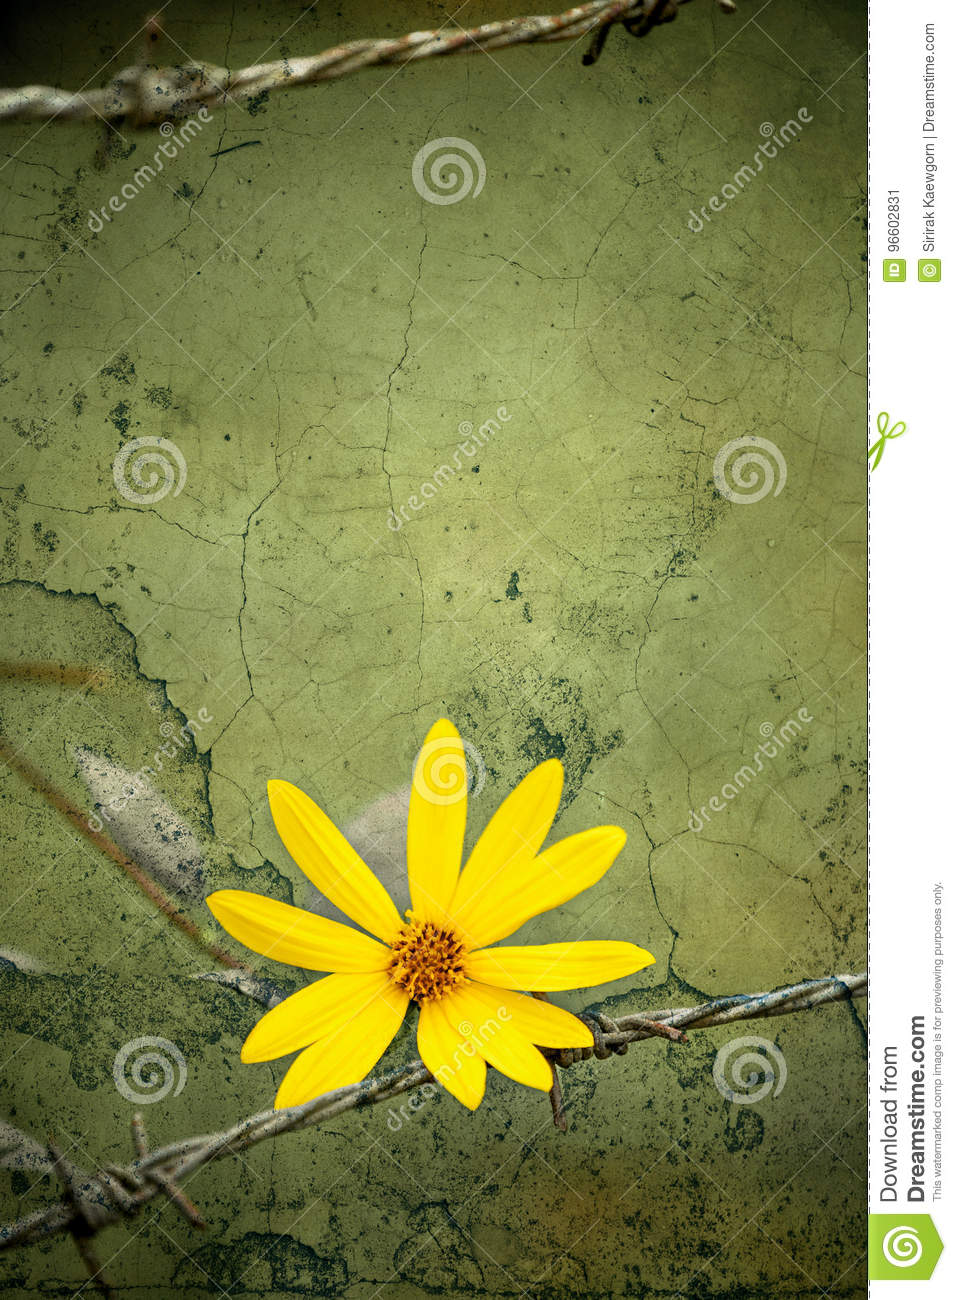 Yellow Flower The Symbol Of Freedom Over Vintage Grungy